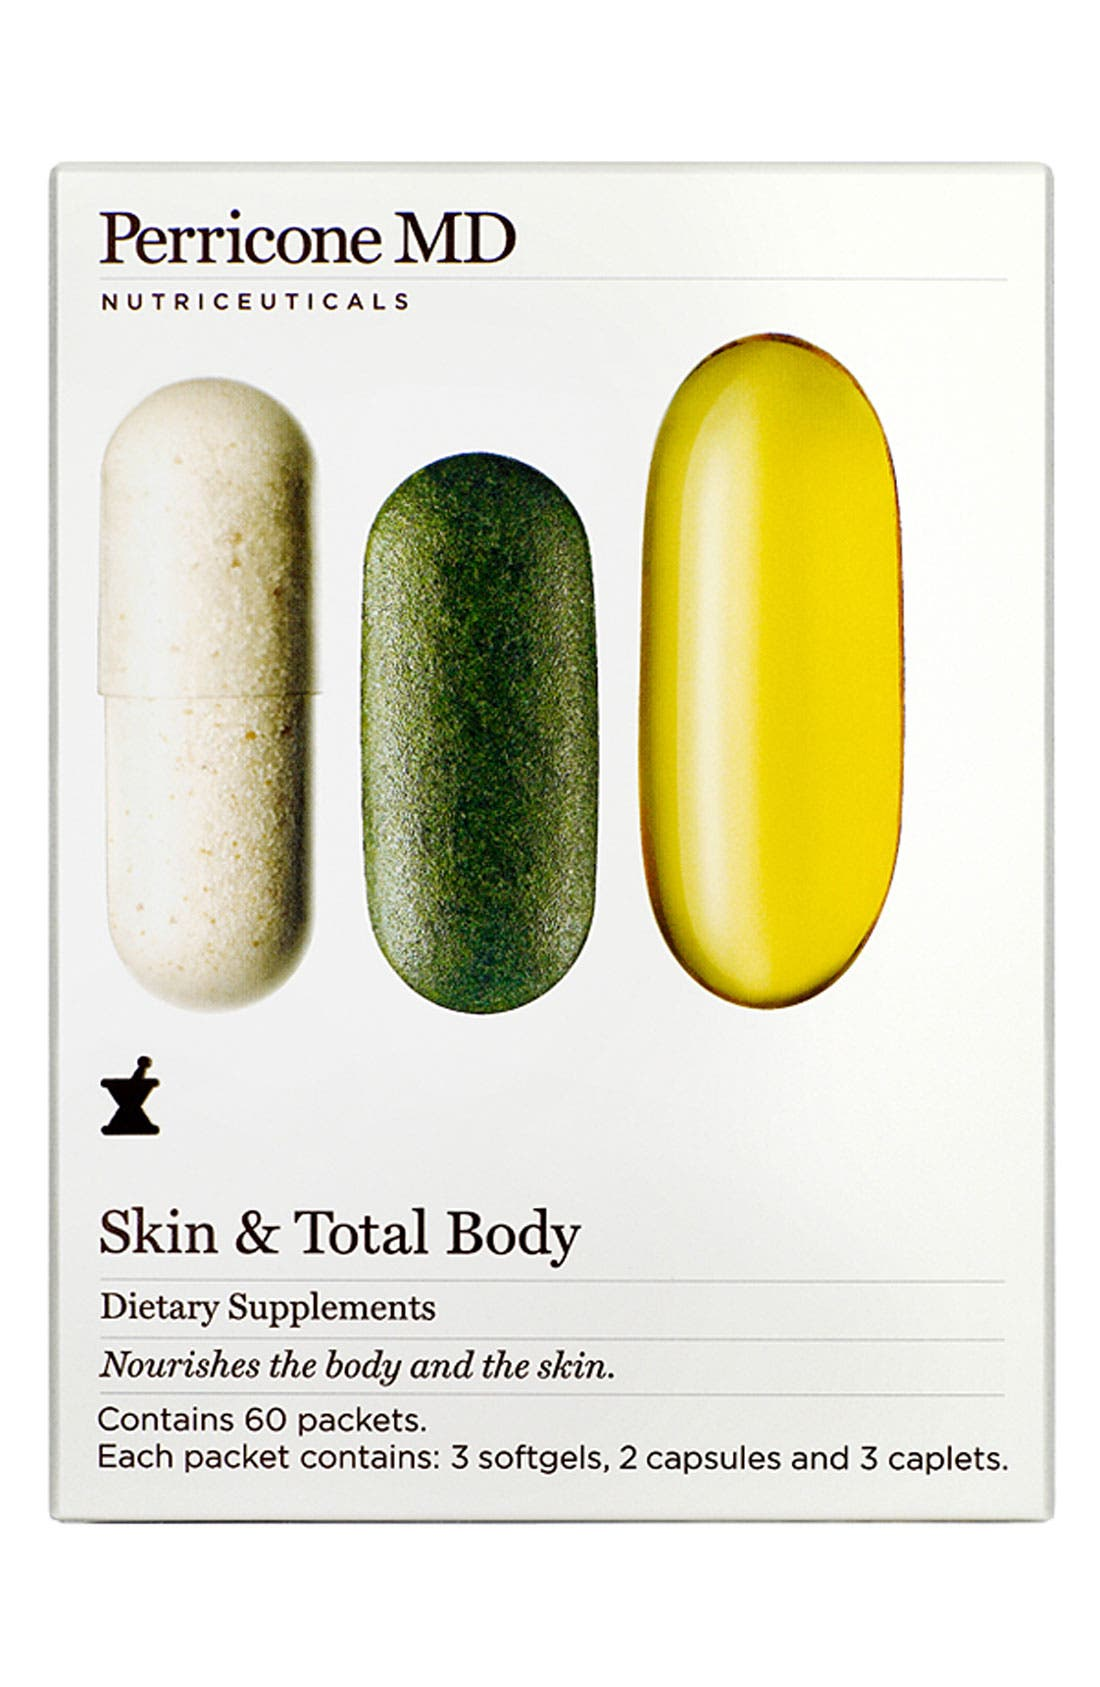 Alternate Image 1 Selected - Perricone MD Skin & Total Body Dietary Supplements